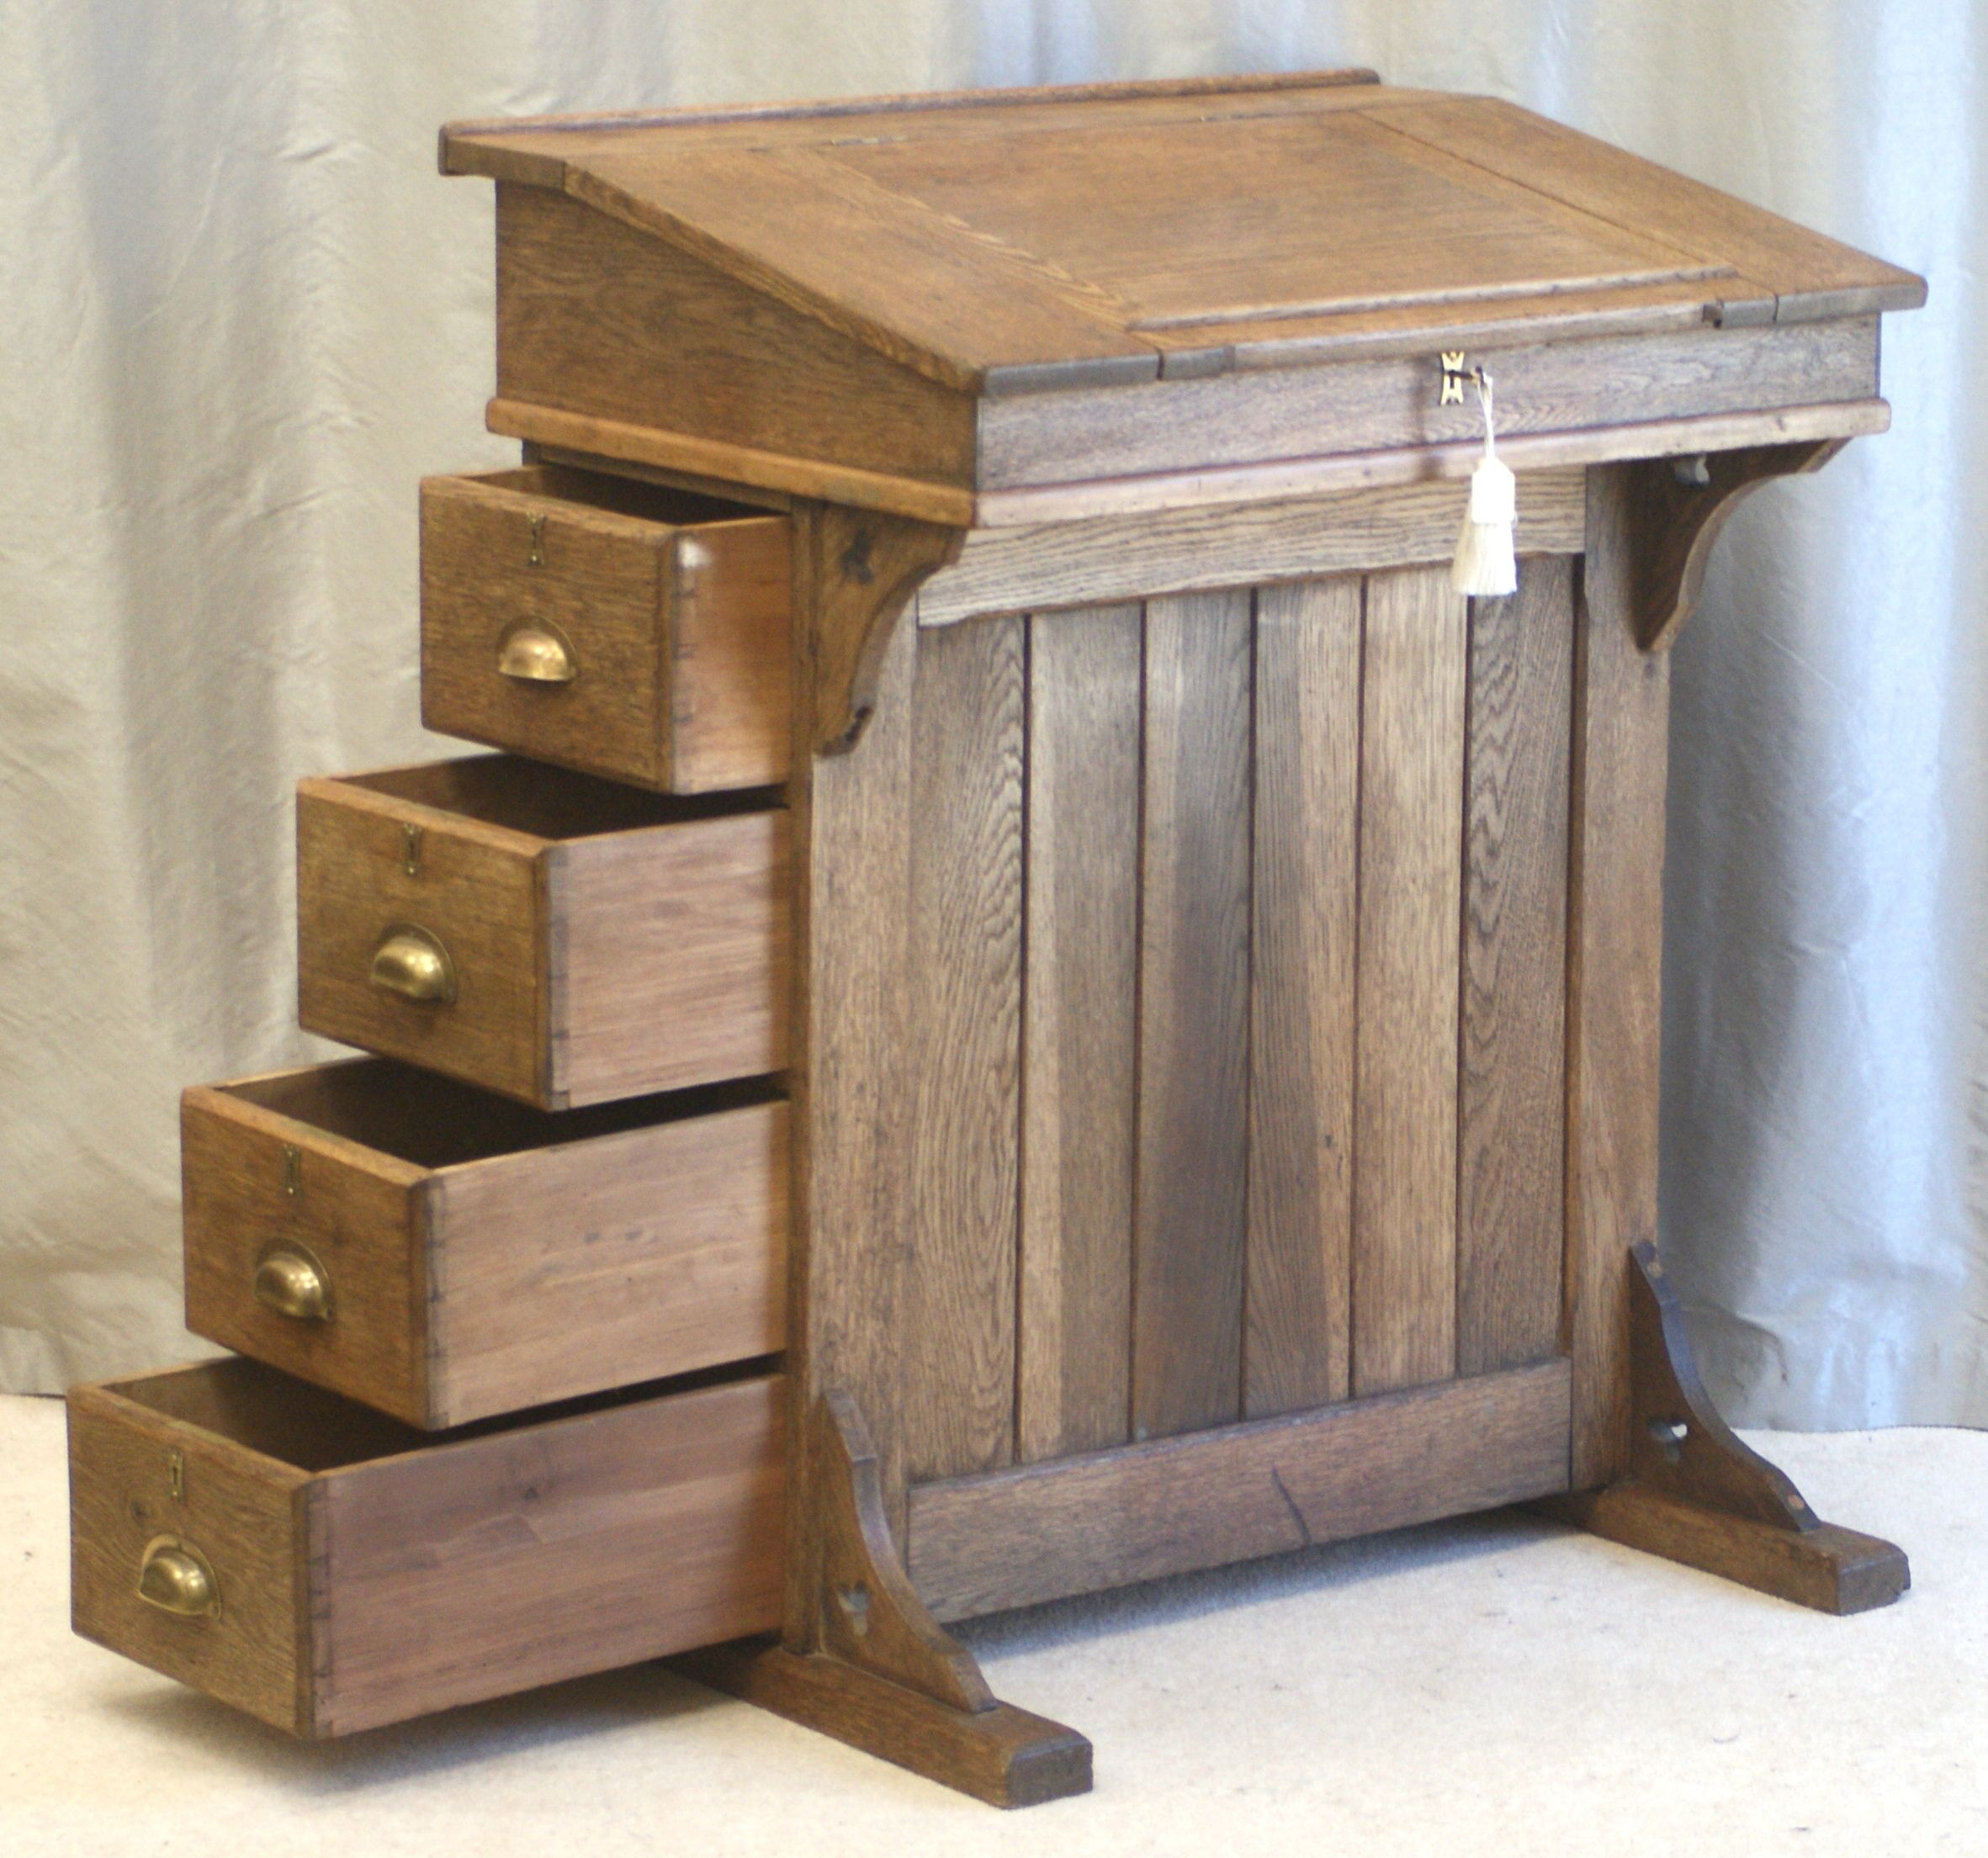 This Is Nearly, But Not Quite, An Imitation Of A Davenport Desk. A